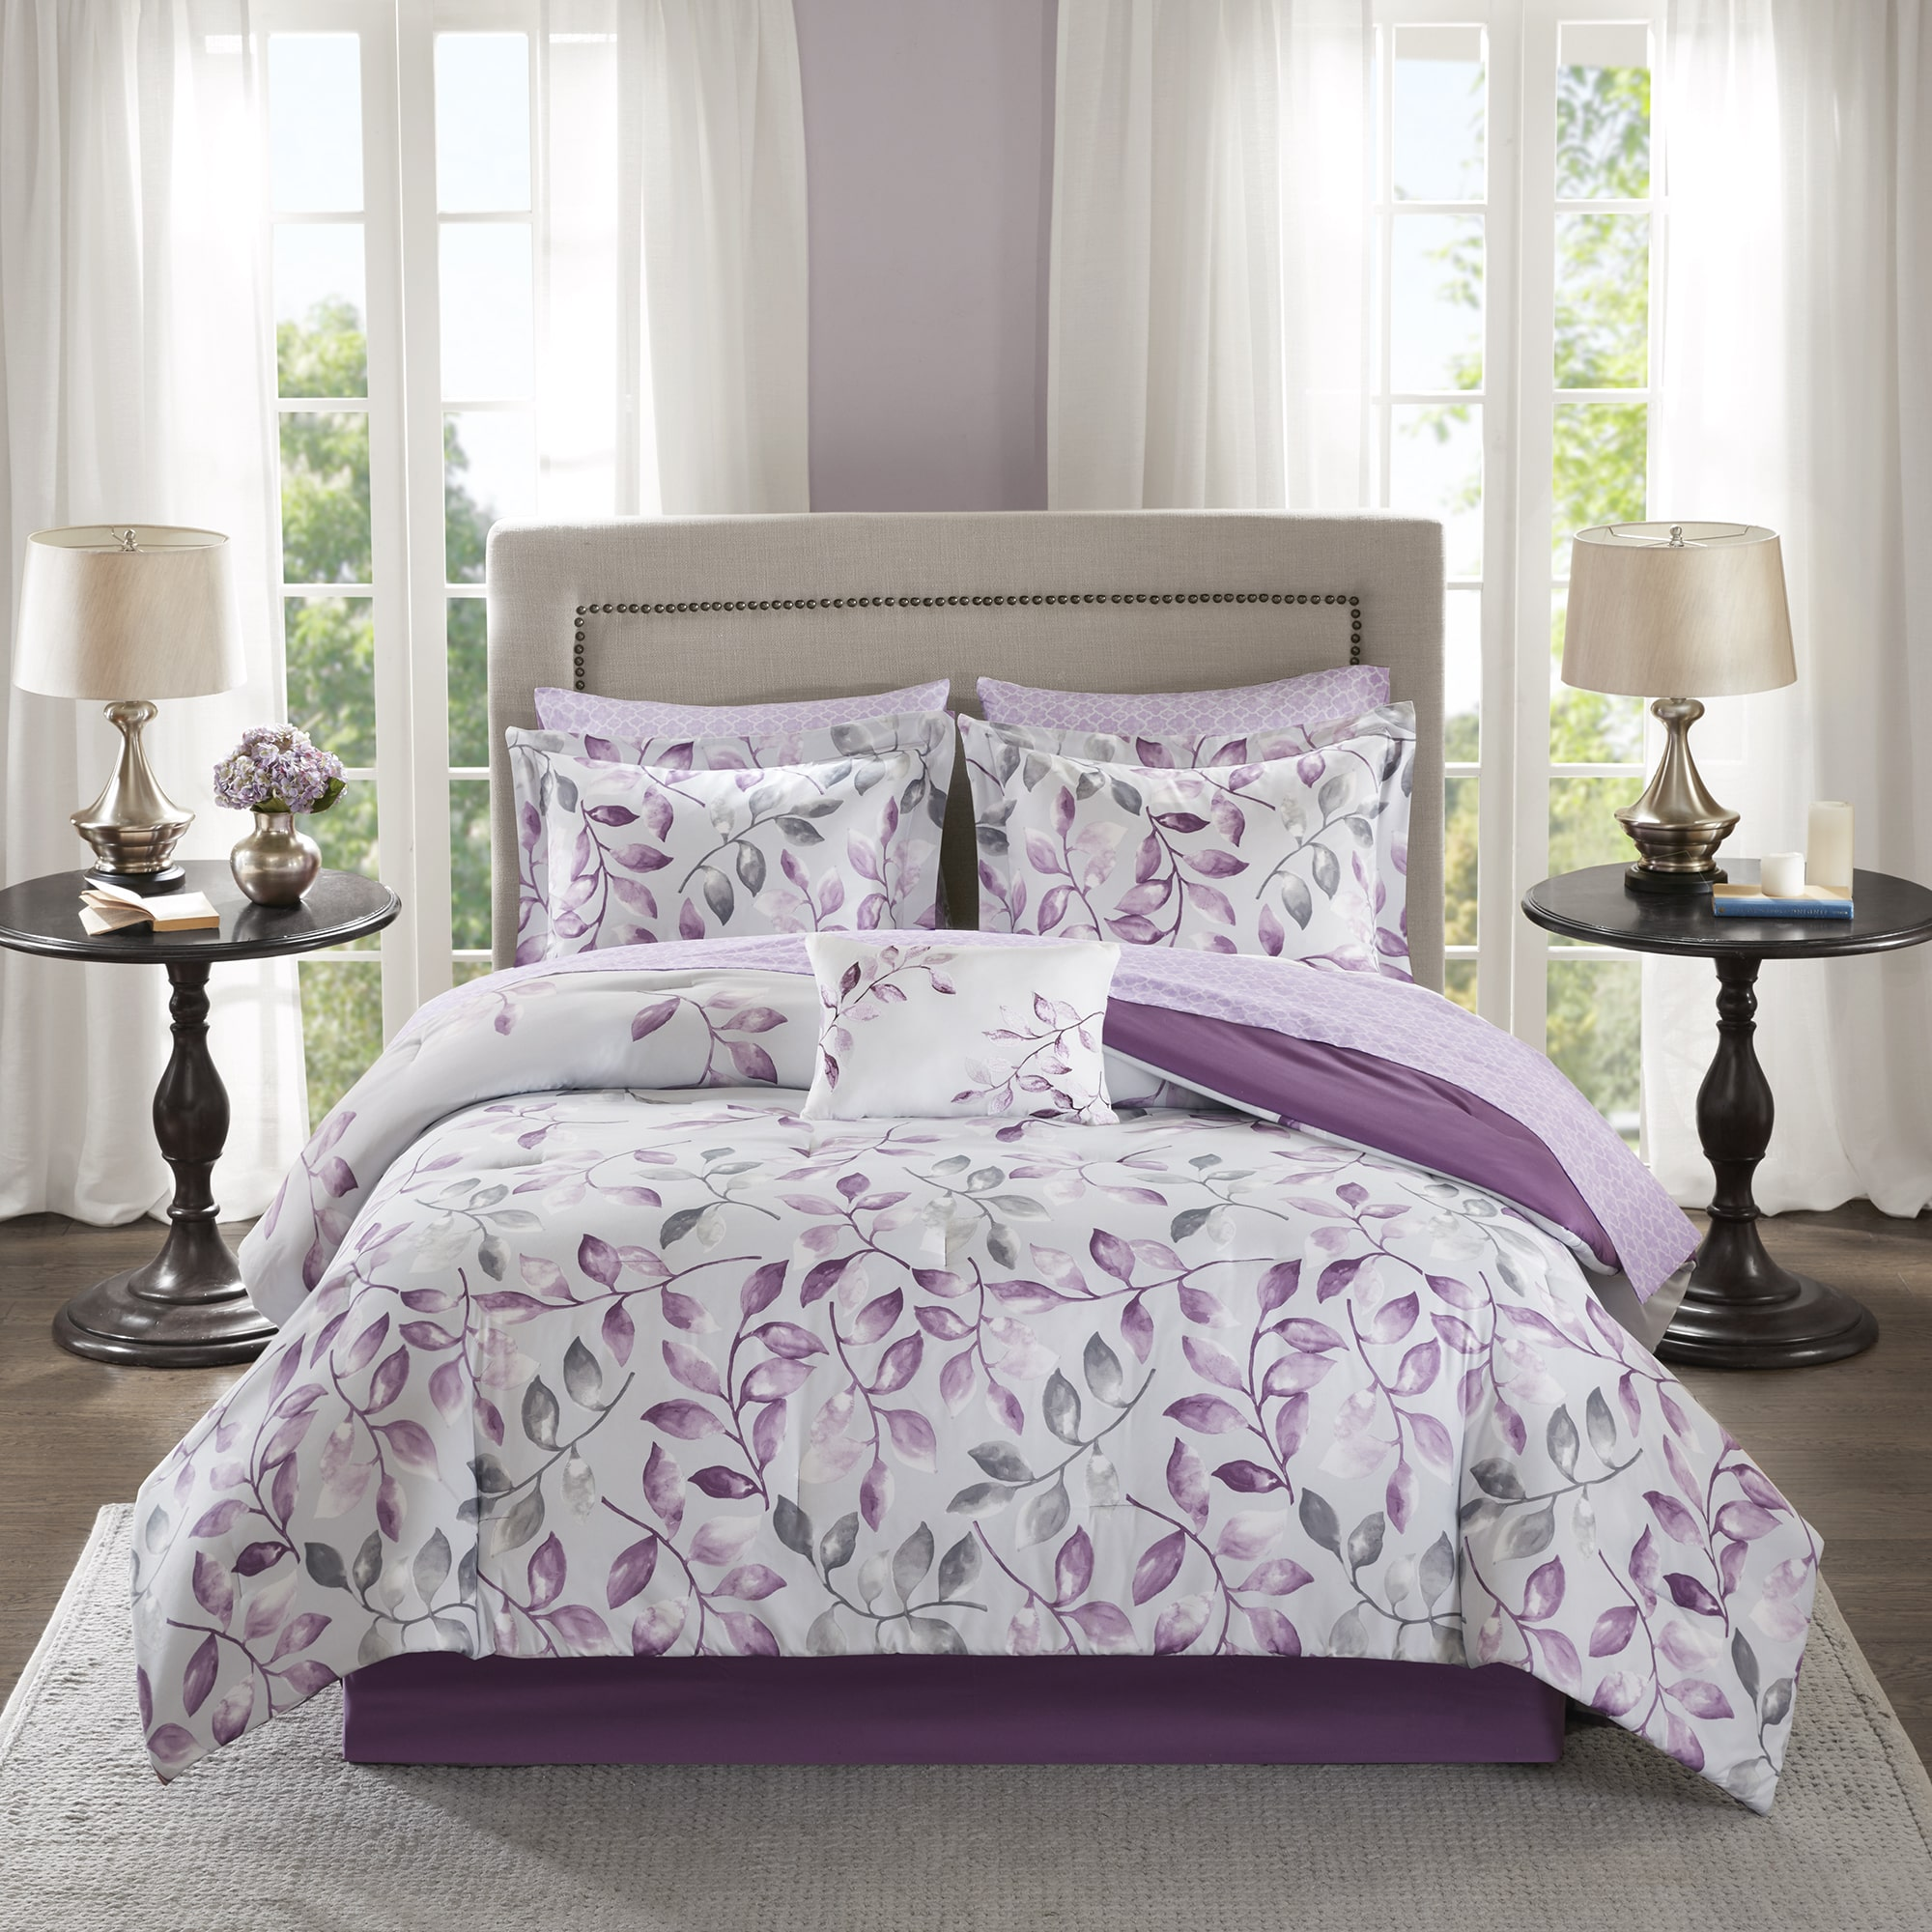 Home Essence Rowan Ultra Soft Microfiber Complete Comforter Set